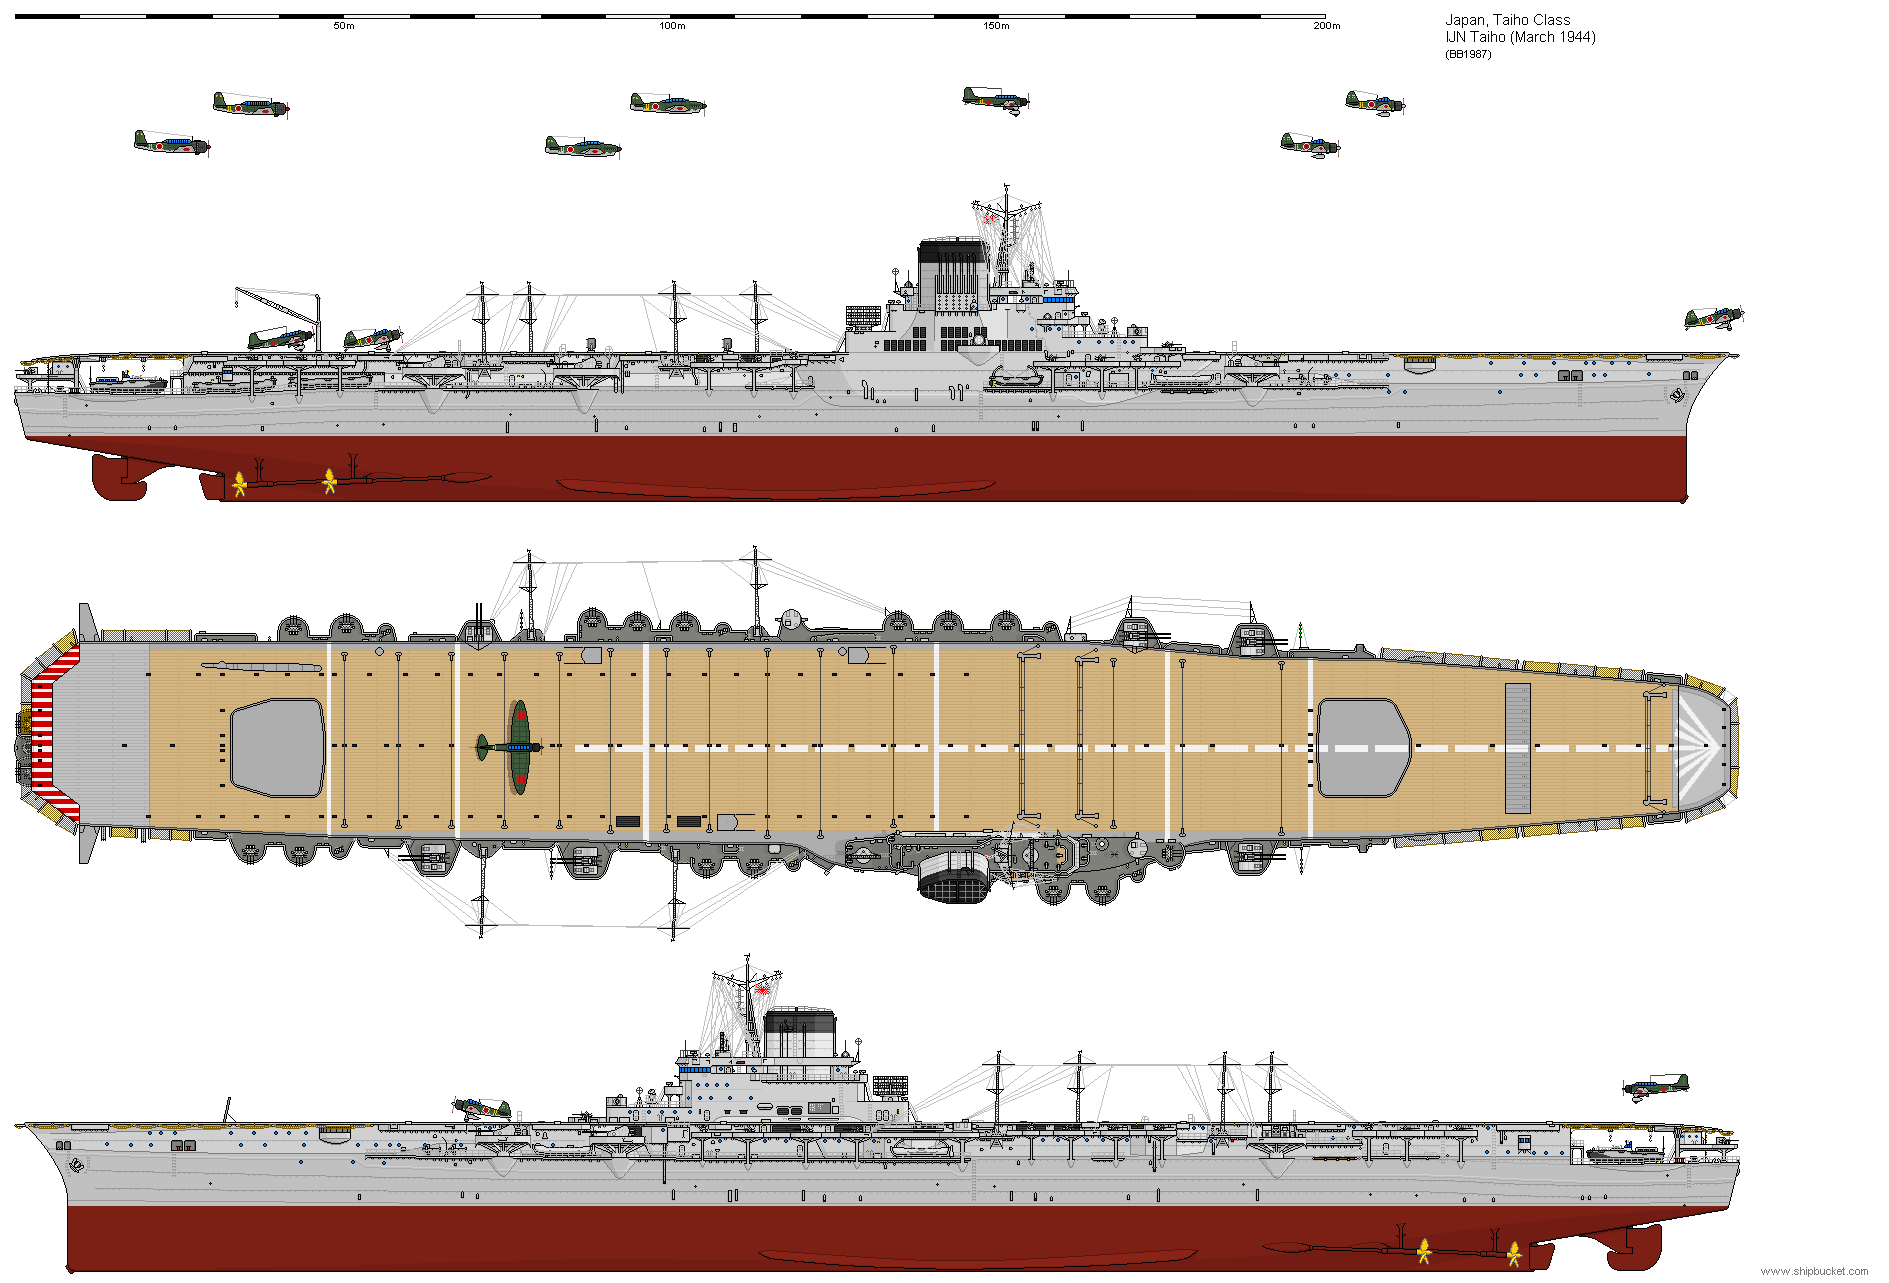 How 1 Really Bad Engineering Mistake 'Sunk' This Japanese Aircraft Carrier